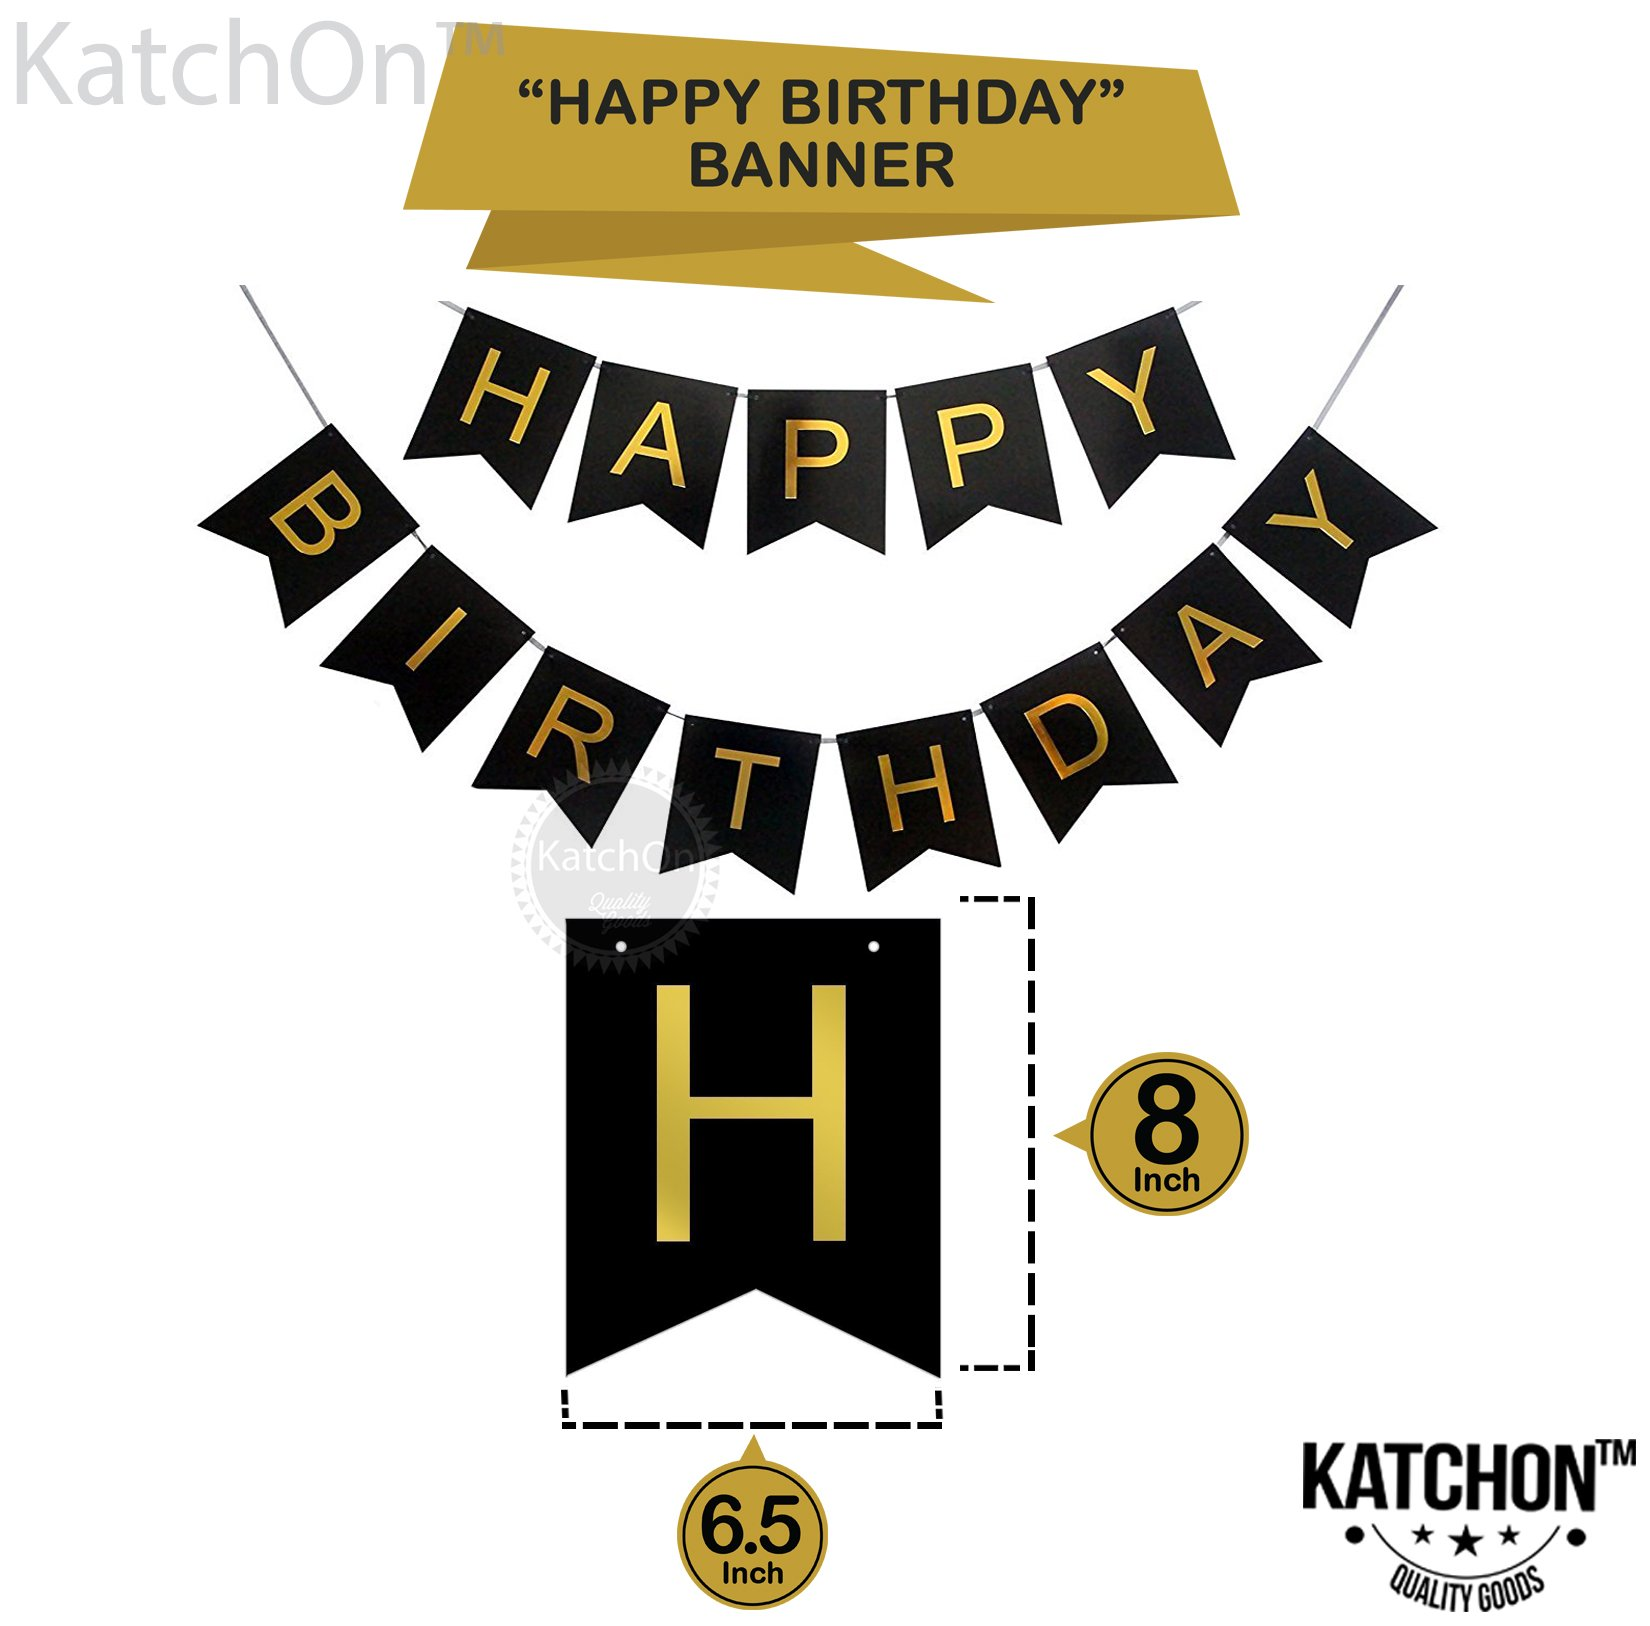 KATCHON 1 11 Decorations Happy Birthday Banner, 40th Balloons,Gold and Black, Number Perfect 40 Years Old Par, M by KATCHON (Image #3)